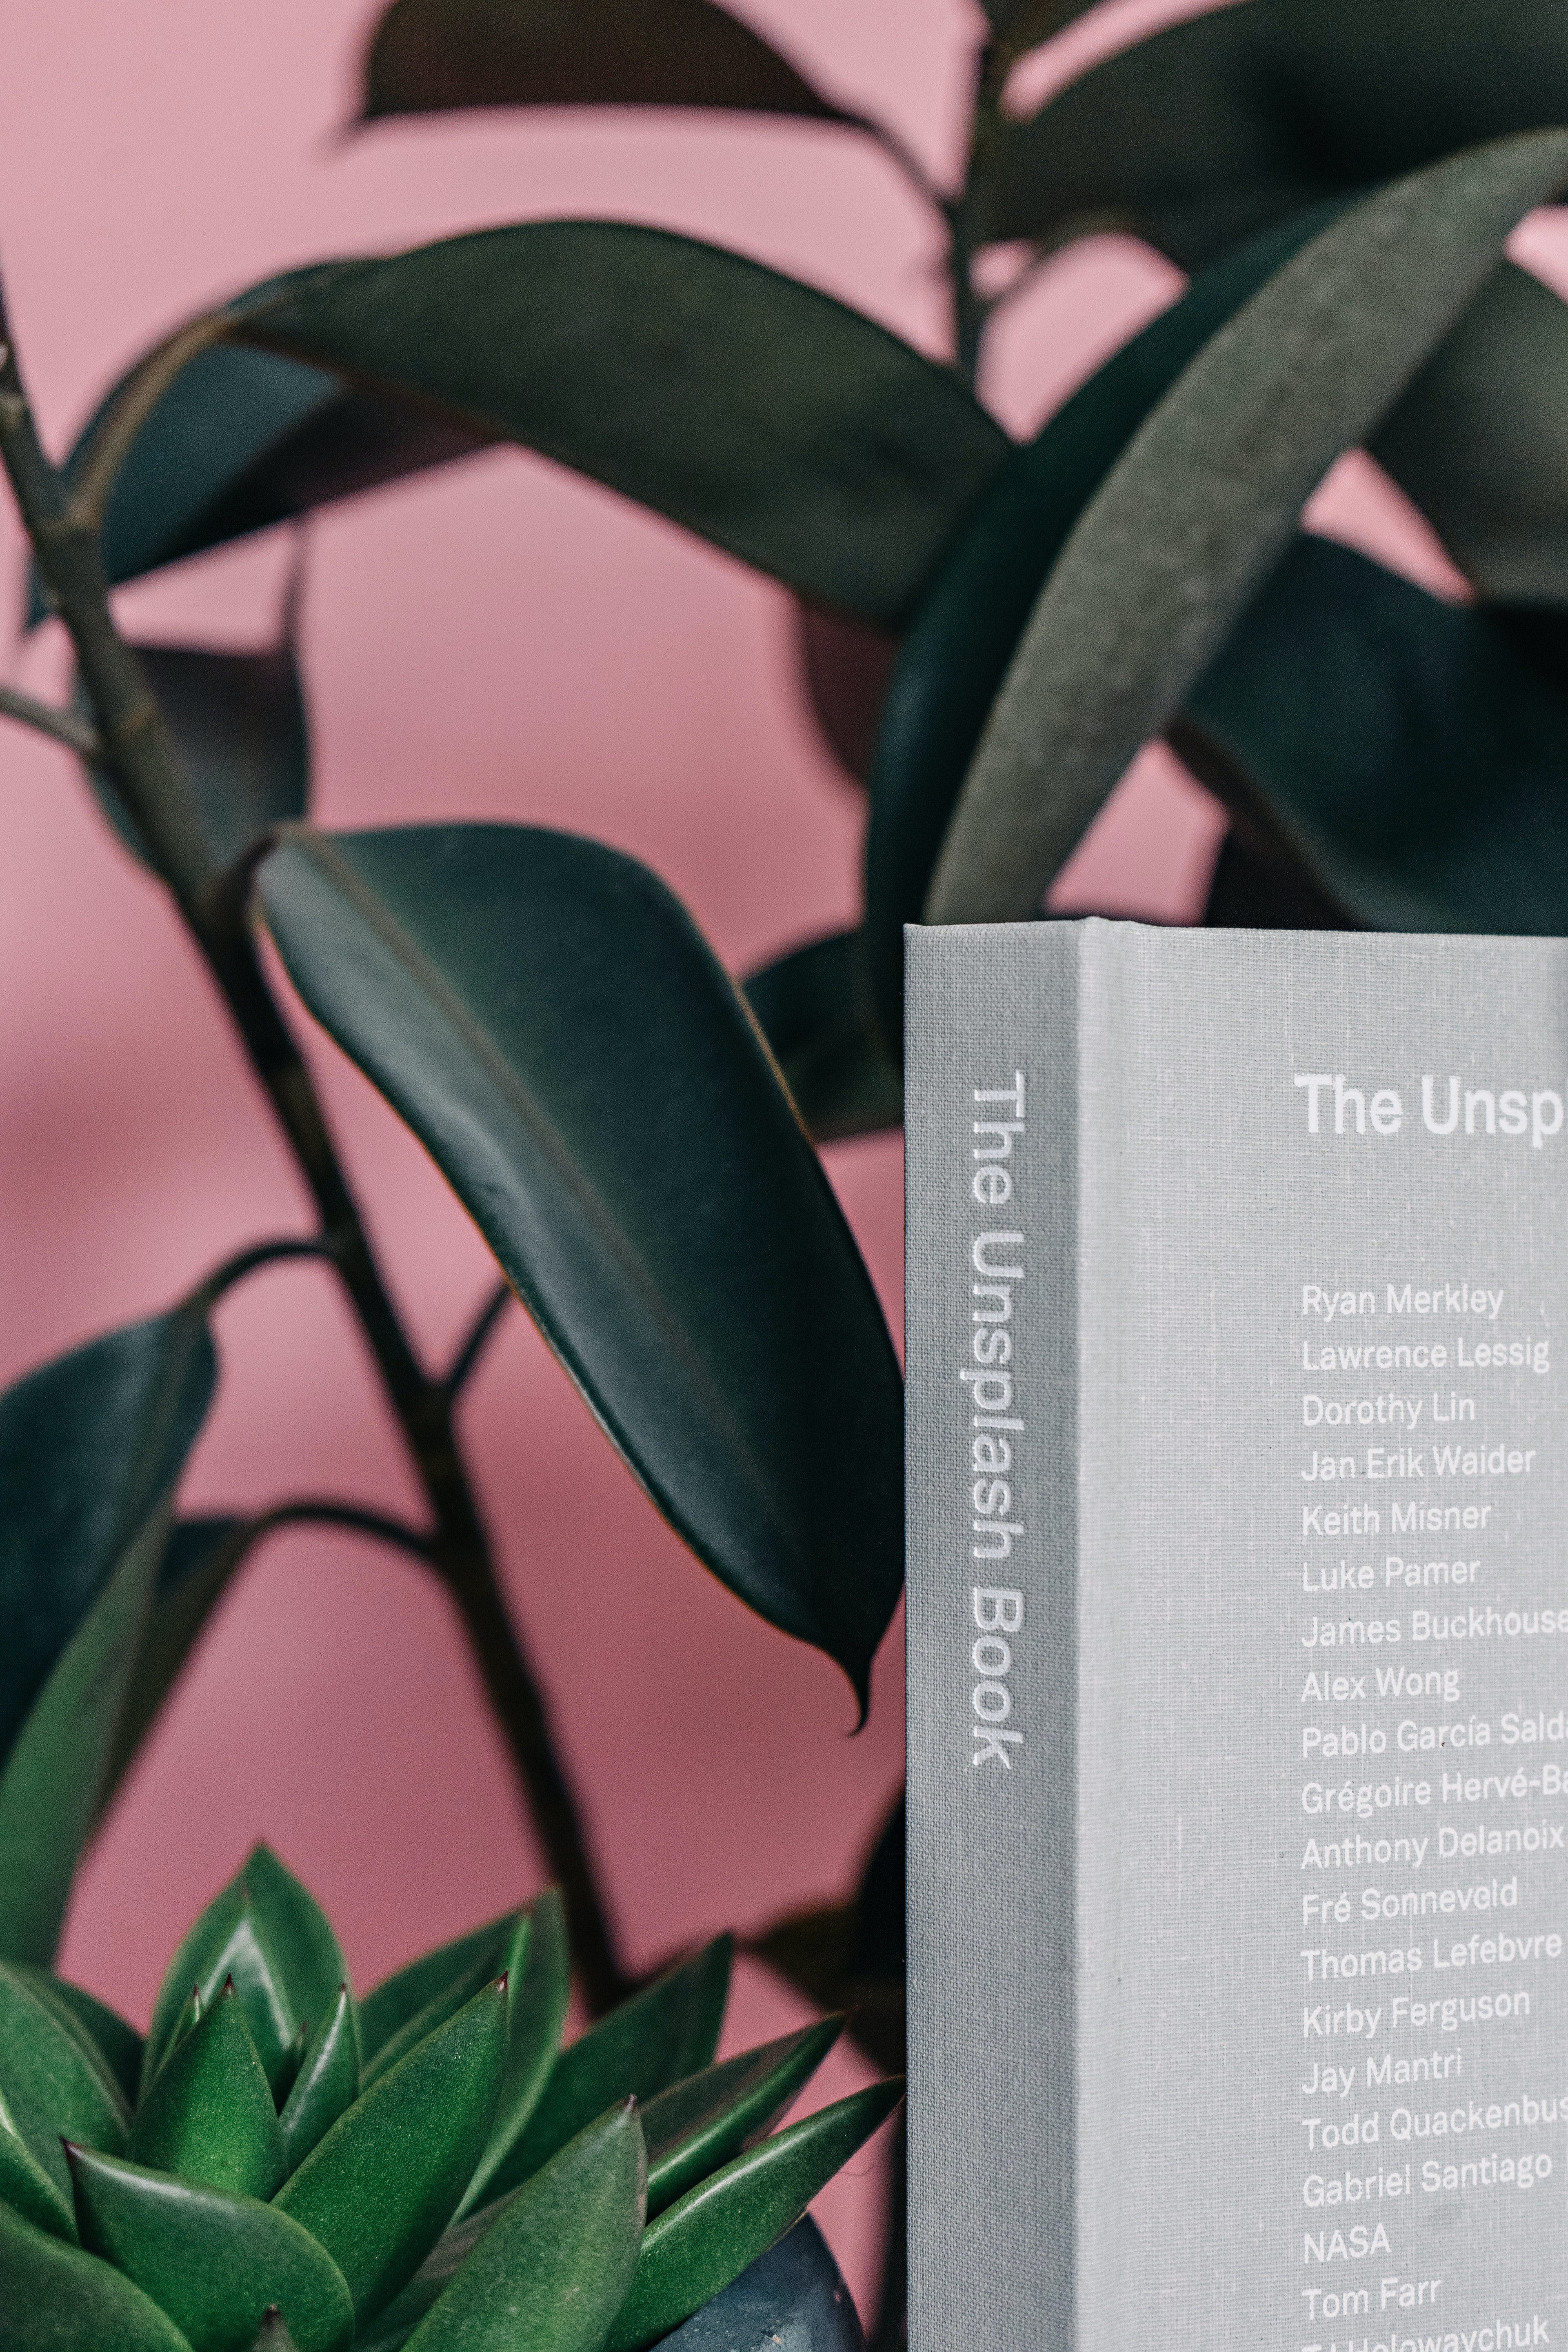 The Uinsplash Book Near Plant